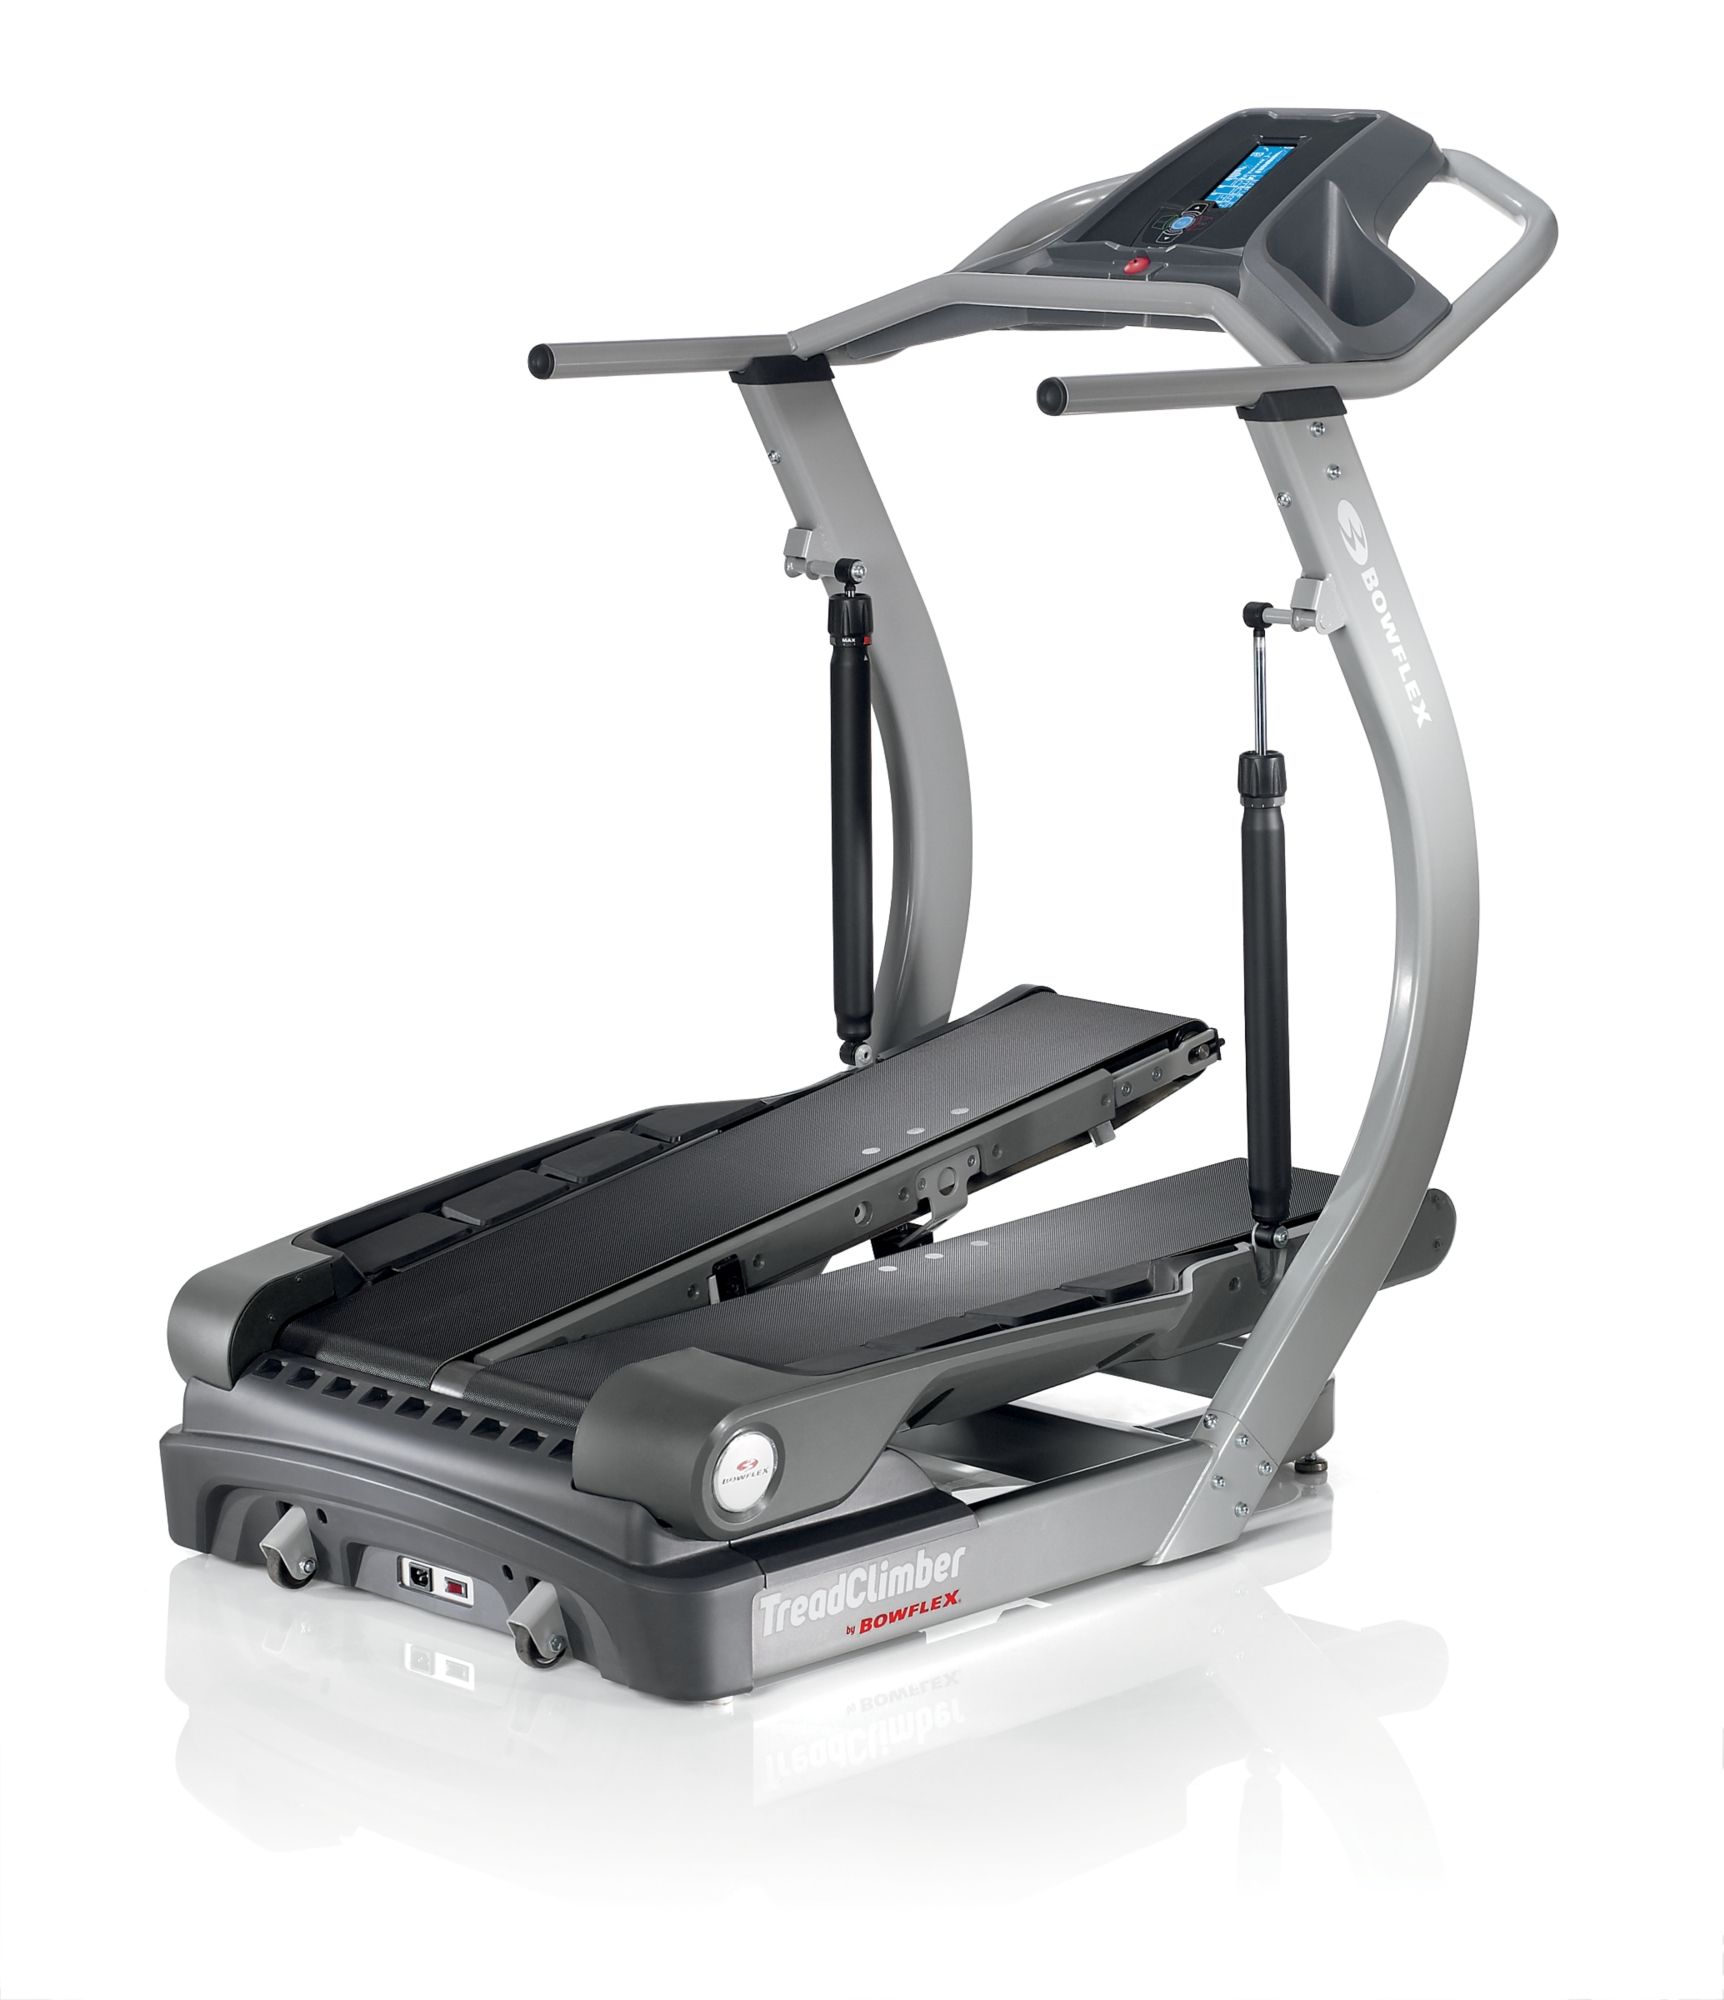 Bowflex Treadclimber Sale: Walk At Home With A Bowflex TreadClimber TC20, Which